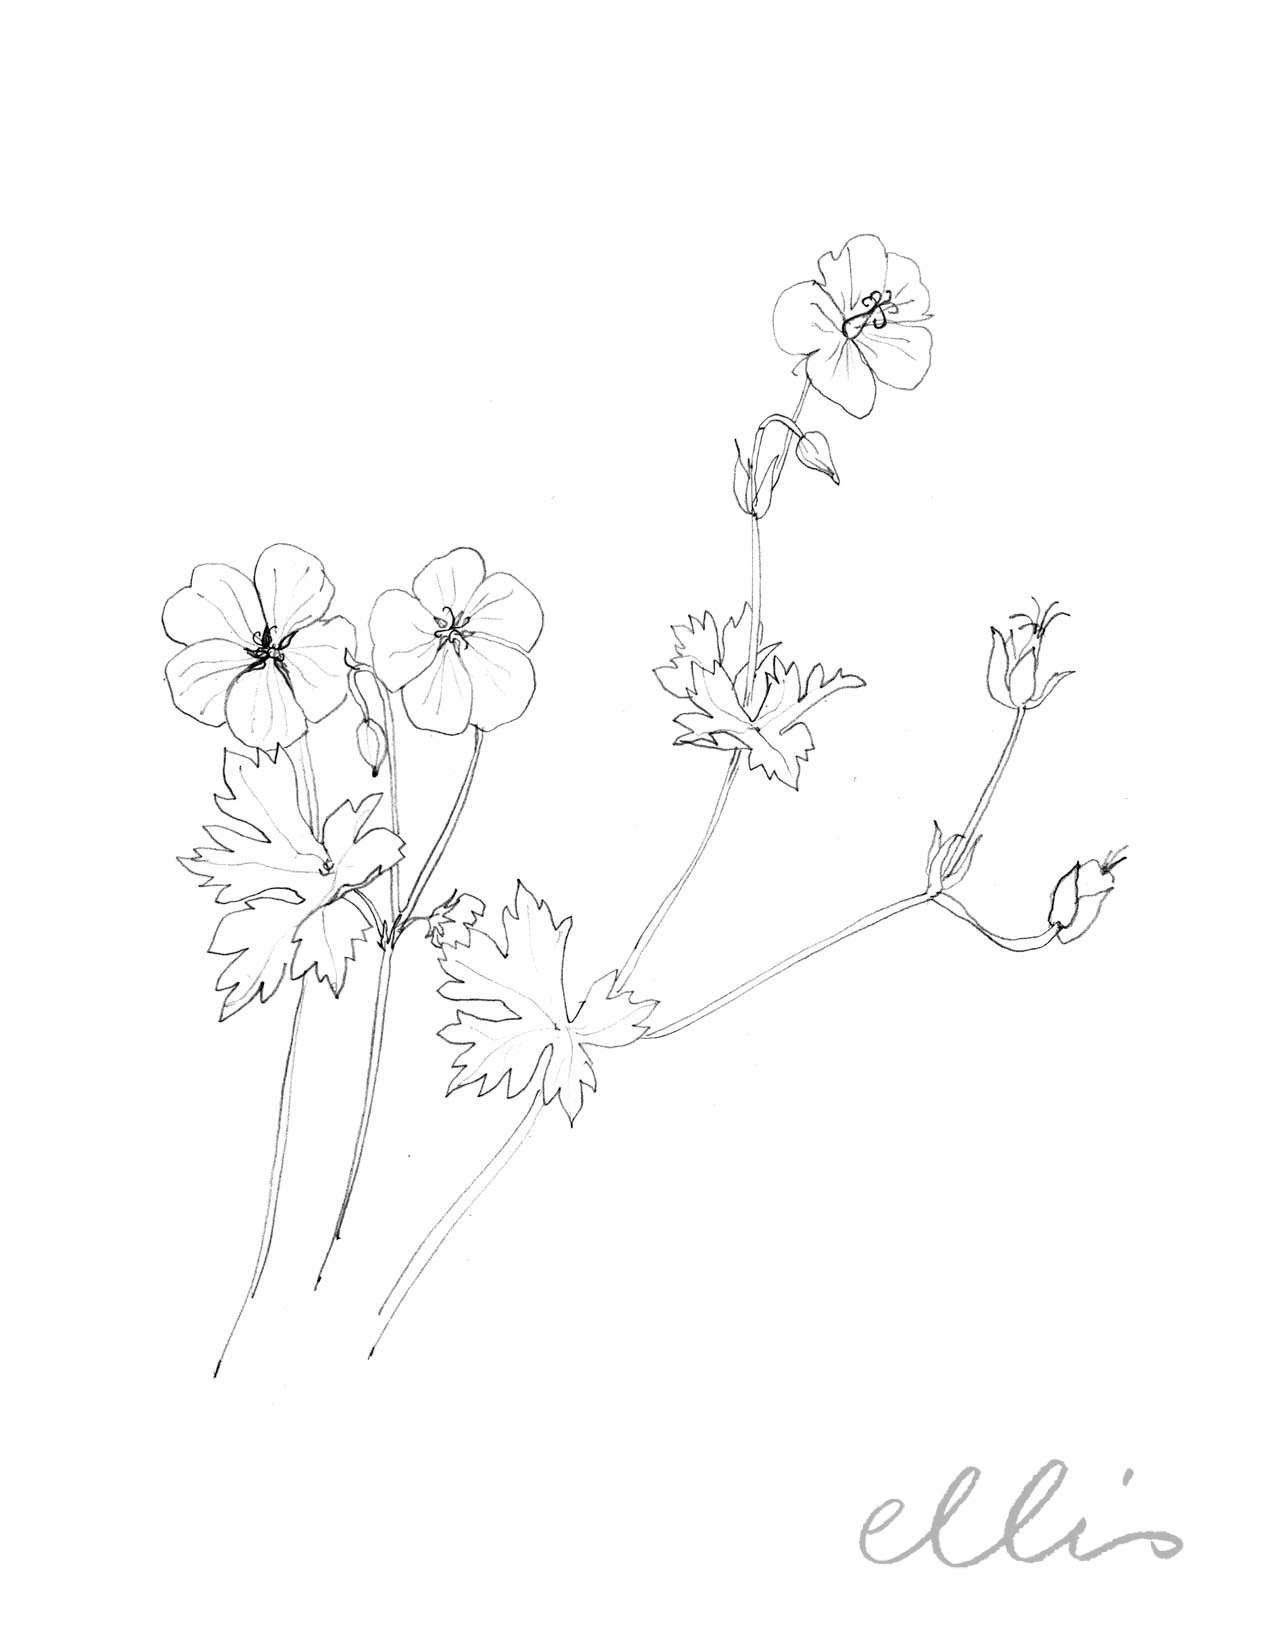 Erin Ellis_100 days project botanical drawings_2013-73.jpg